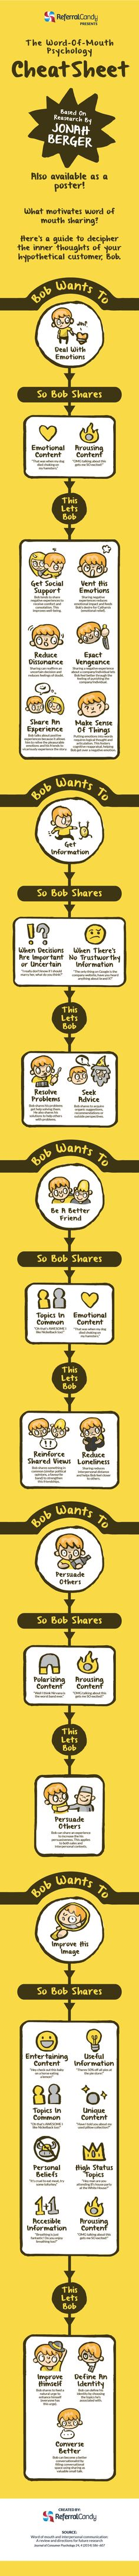 """Want insight behind the psychology of word-of-mouth sharing? Check out ReferralCandy's """"The Word-of-Mouth Psychology"""" Word Of Mouth Marketing, The Marketing, Digital Marketing, Marketing Ideas, Marketing Technology, Marketing Automation, Marketing Communications, Free Poster Printables, Free Printable"""